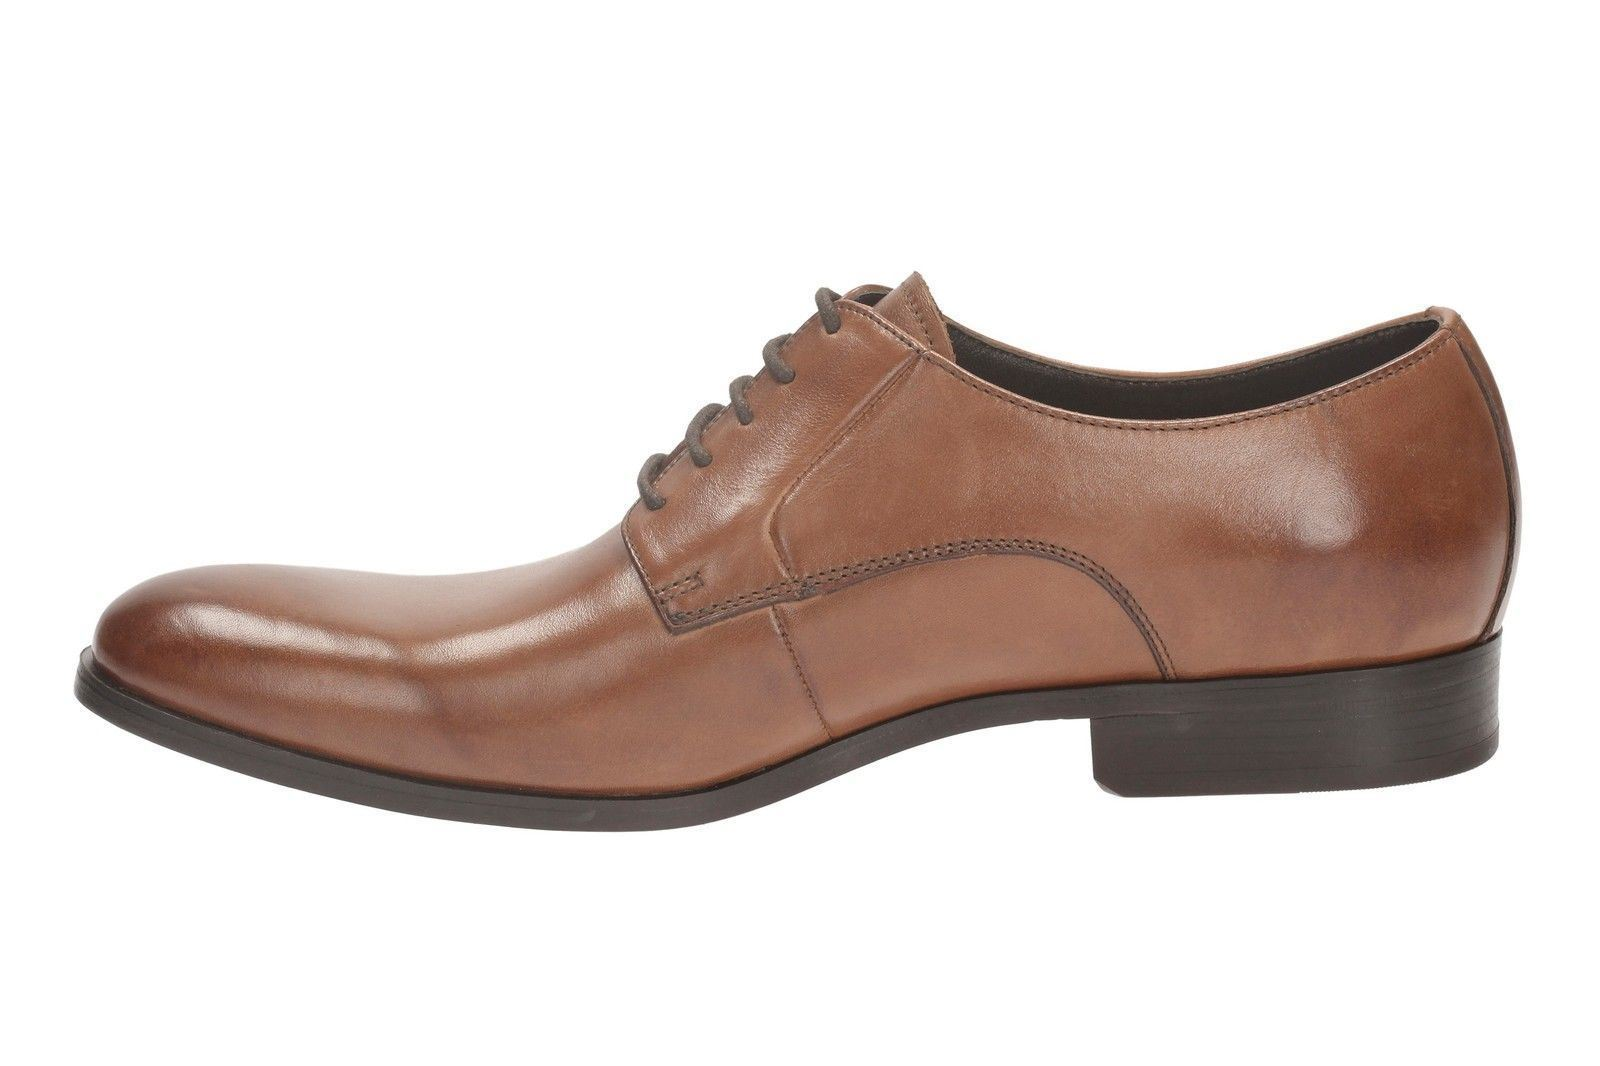 Men's Clarks Shoes Lace Up Leather Formal Shoes Clarks Label - Banfield Walk 975f63